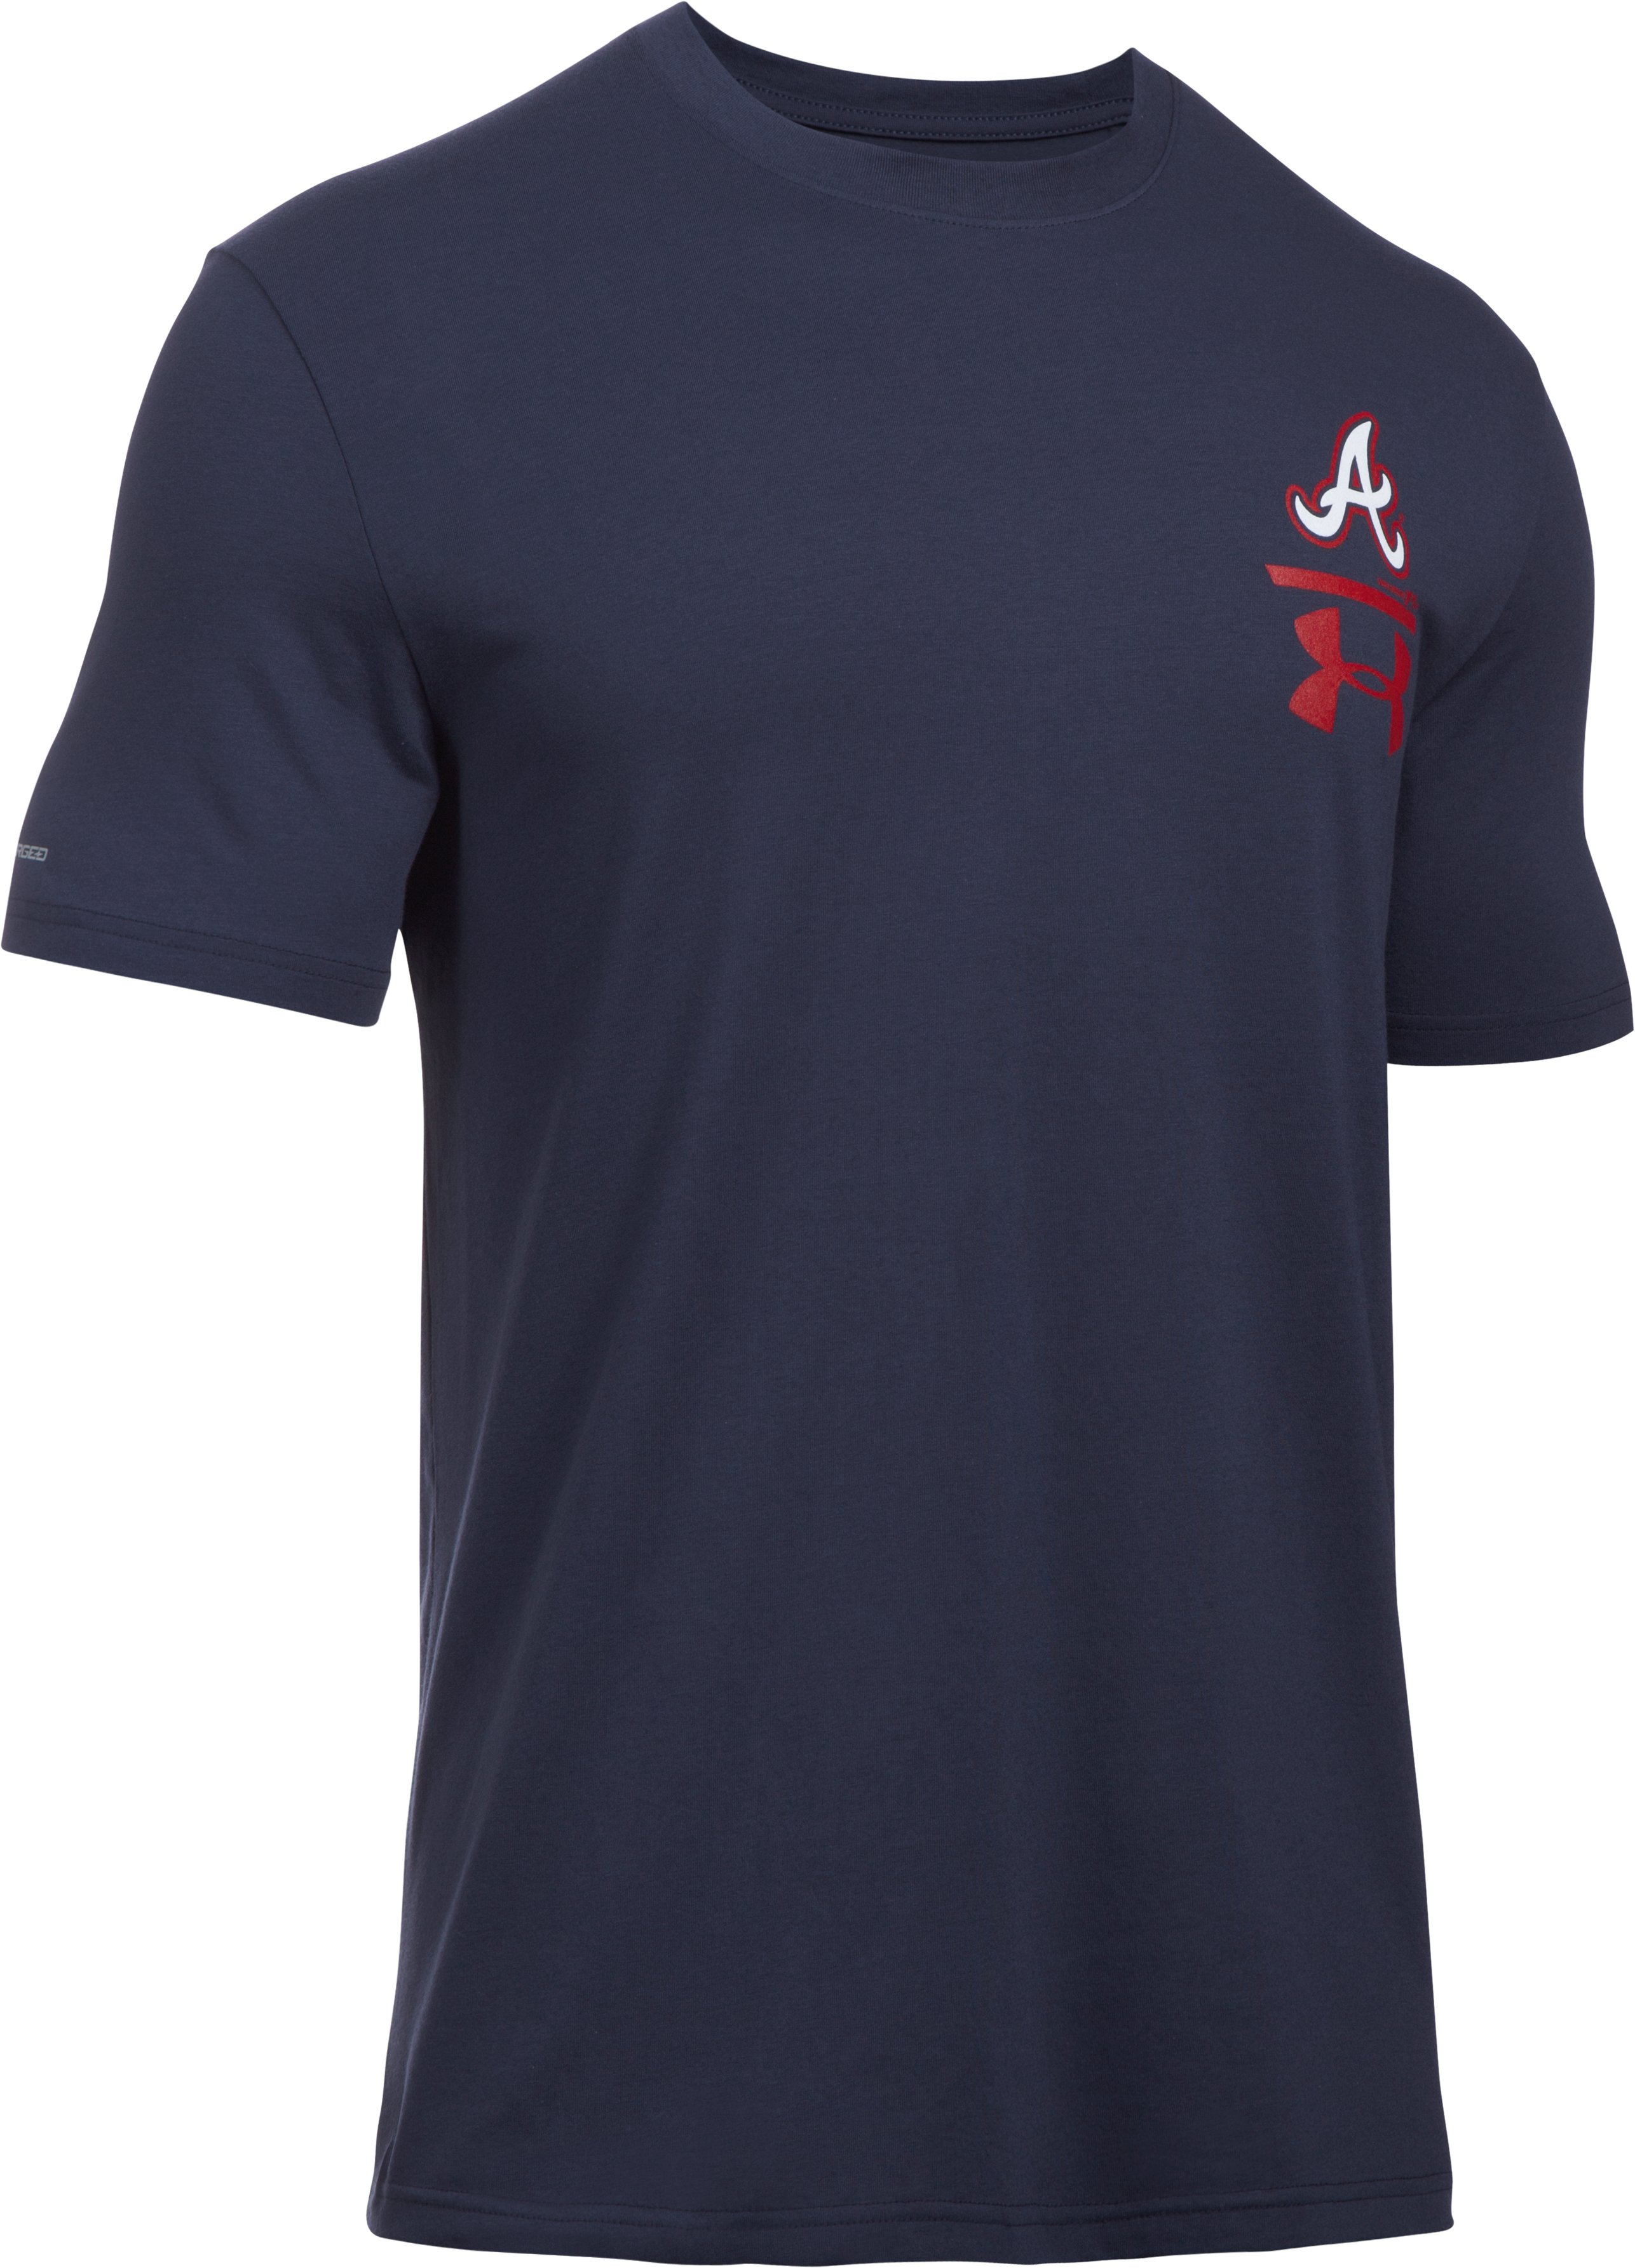 Men's Atlanta Braves Logo T-Shirt, Midnight Navy, undefined